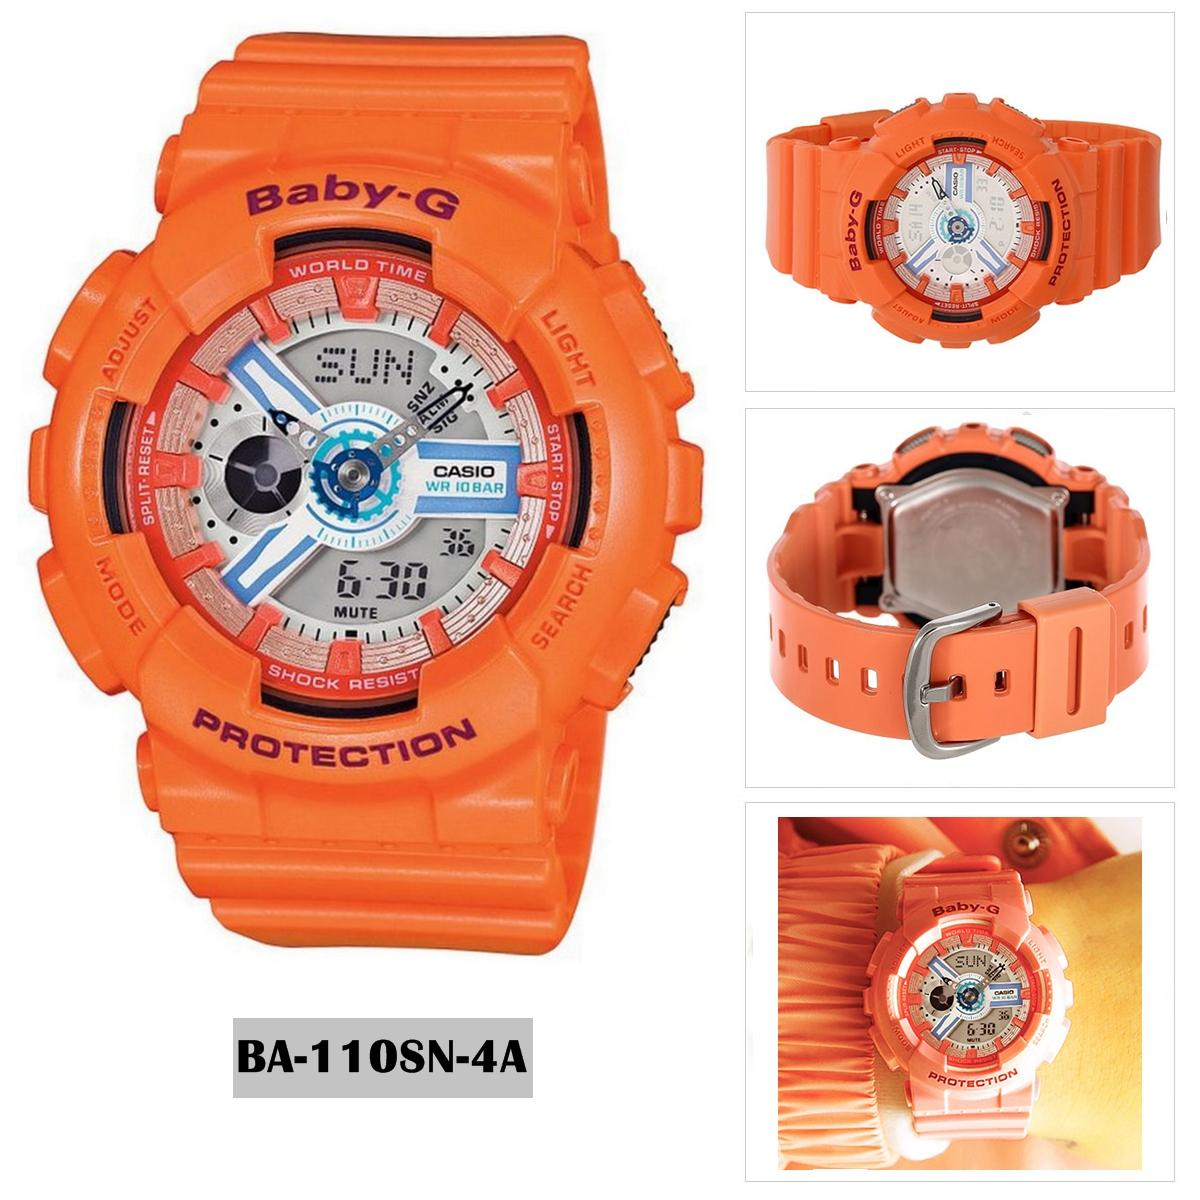 Philippines Casio Watch Baby G Orange Resin Case Strap Ldf 52 4a Original Pink Ladies Nwt Warranty Ba